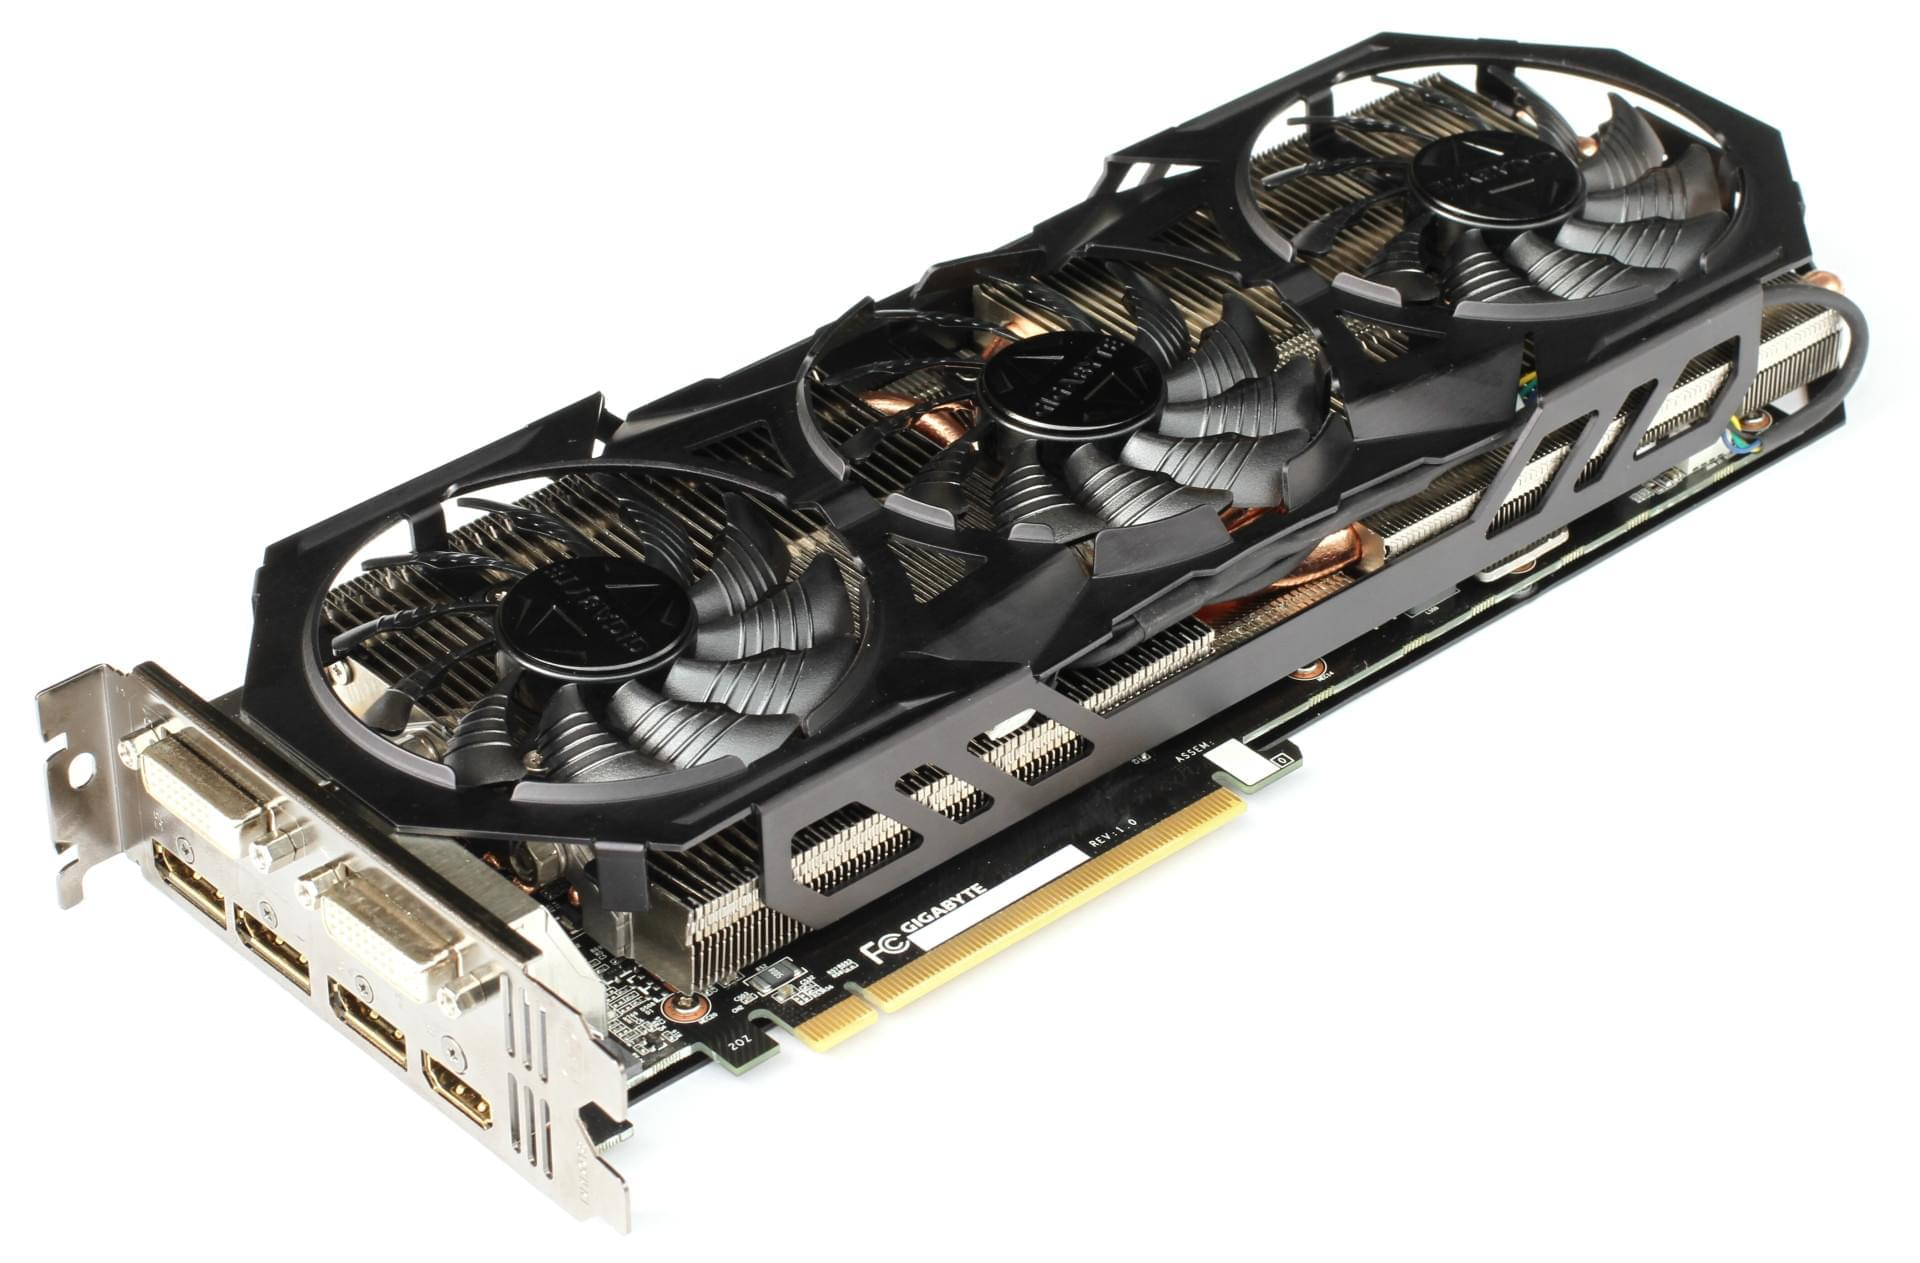 Gigabyte N970G1 GAMING 4GD 4Go - Carte graphique Gigabyte - 0